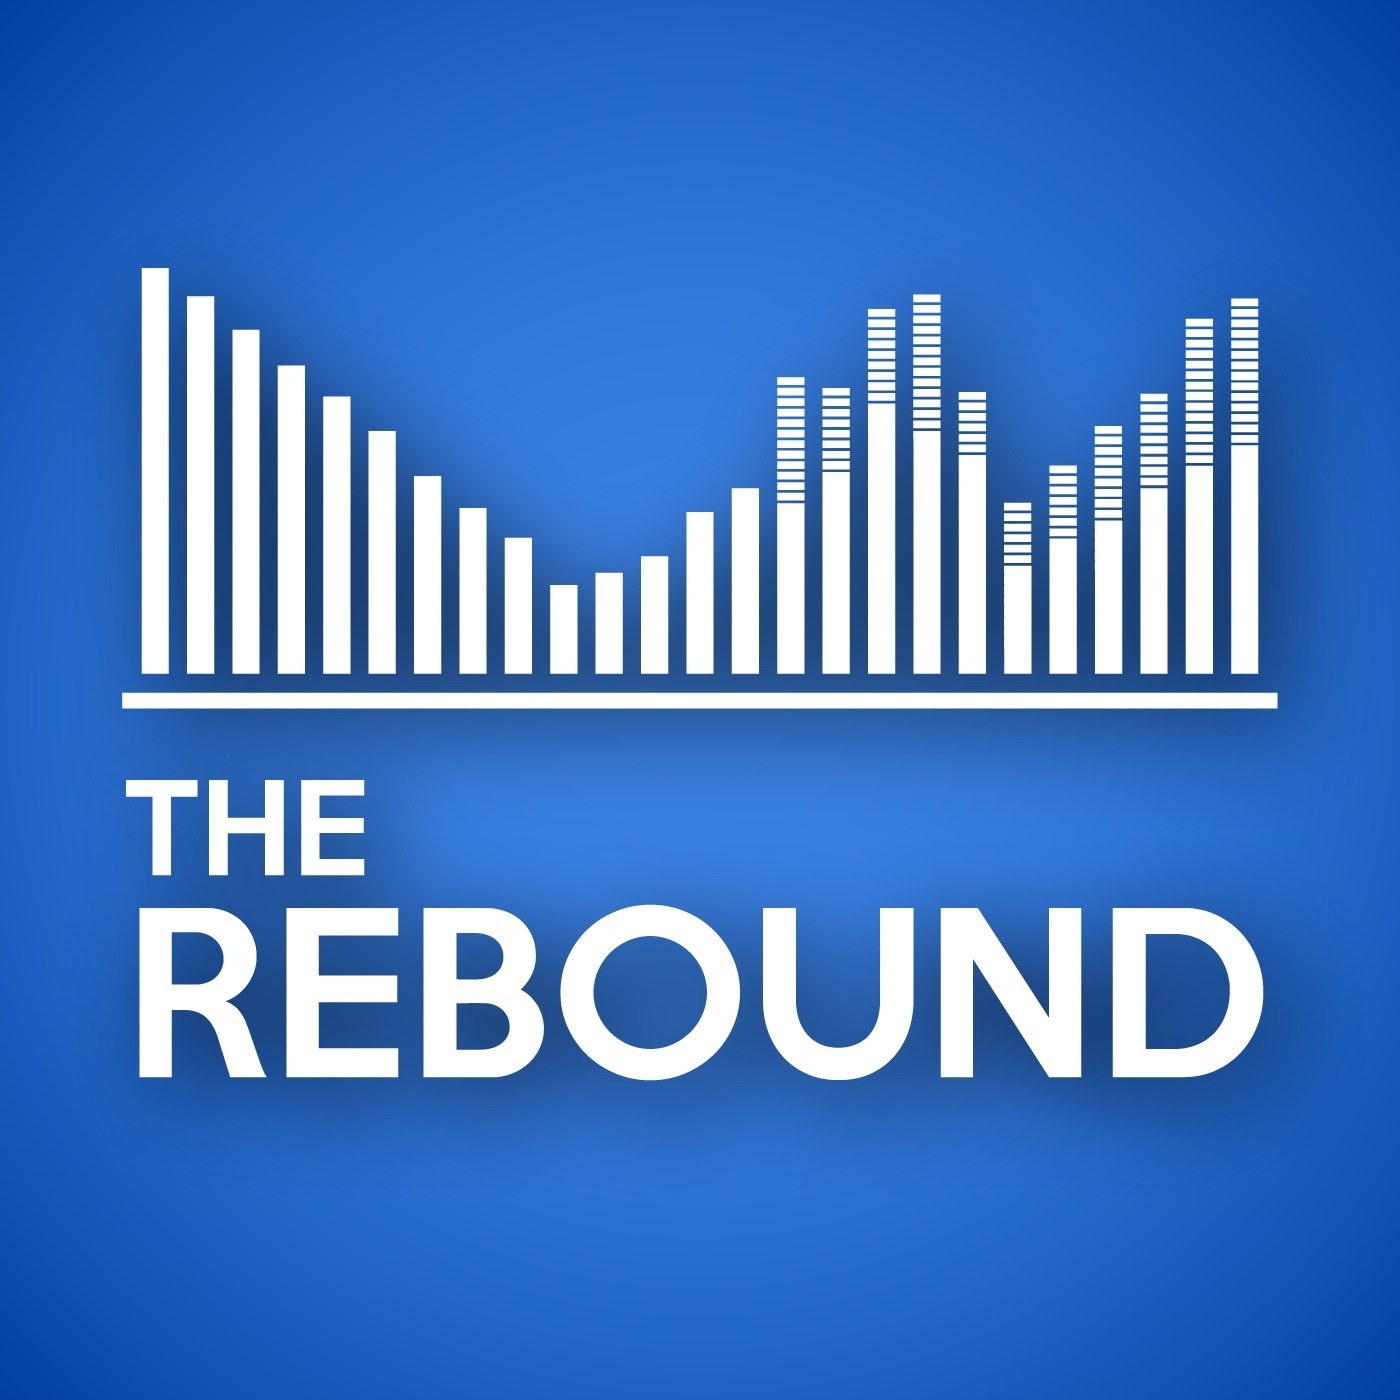 04aef52e96880 The Rebound by The Rebound on Apple Podcasts